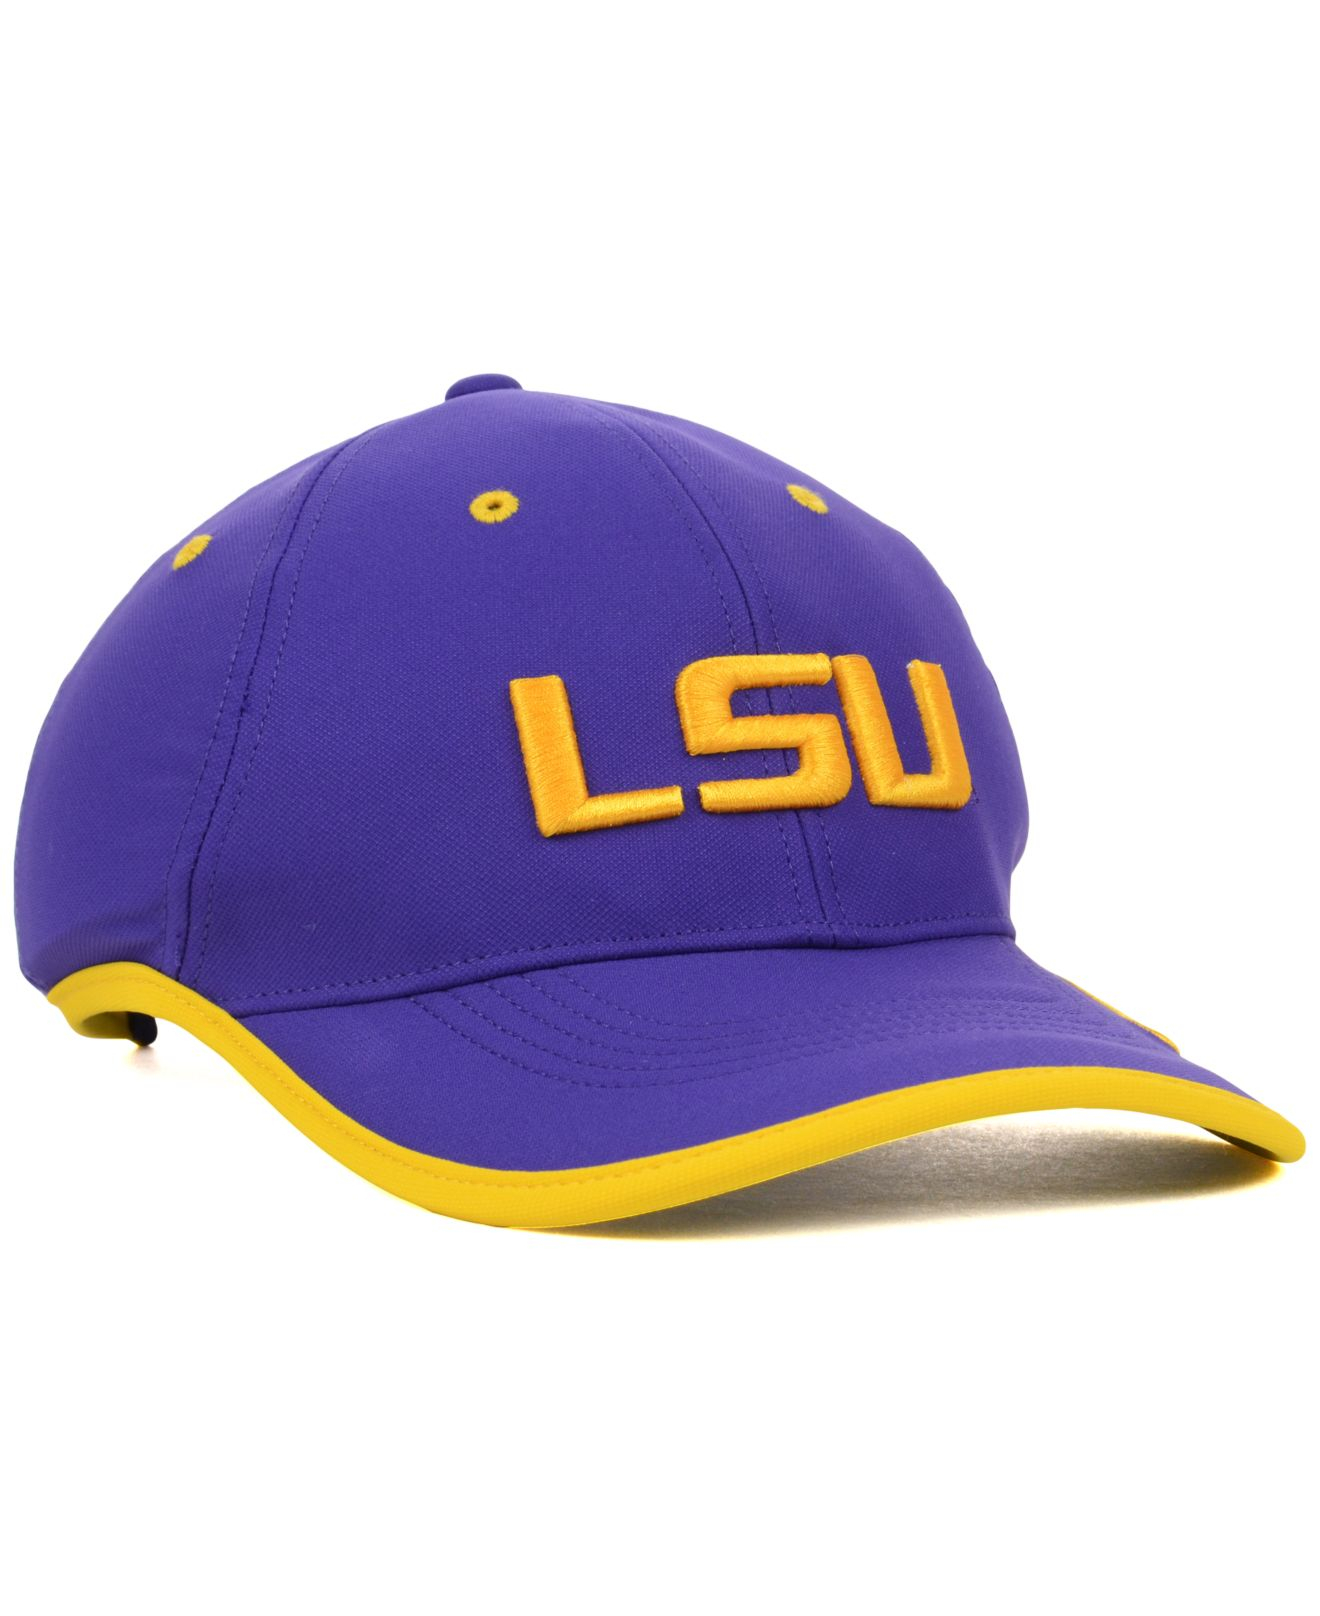 ... sweden lyst nike lsu tigers coaches dri fit cap in purple for men 212f3  d3a10 6444183eede0